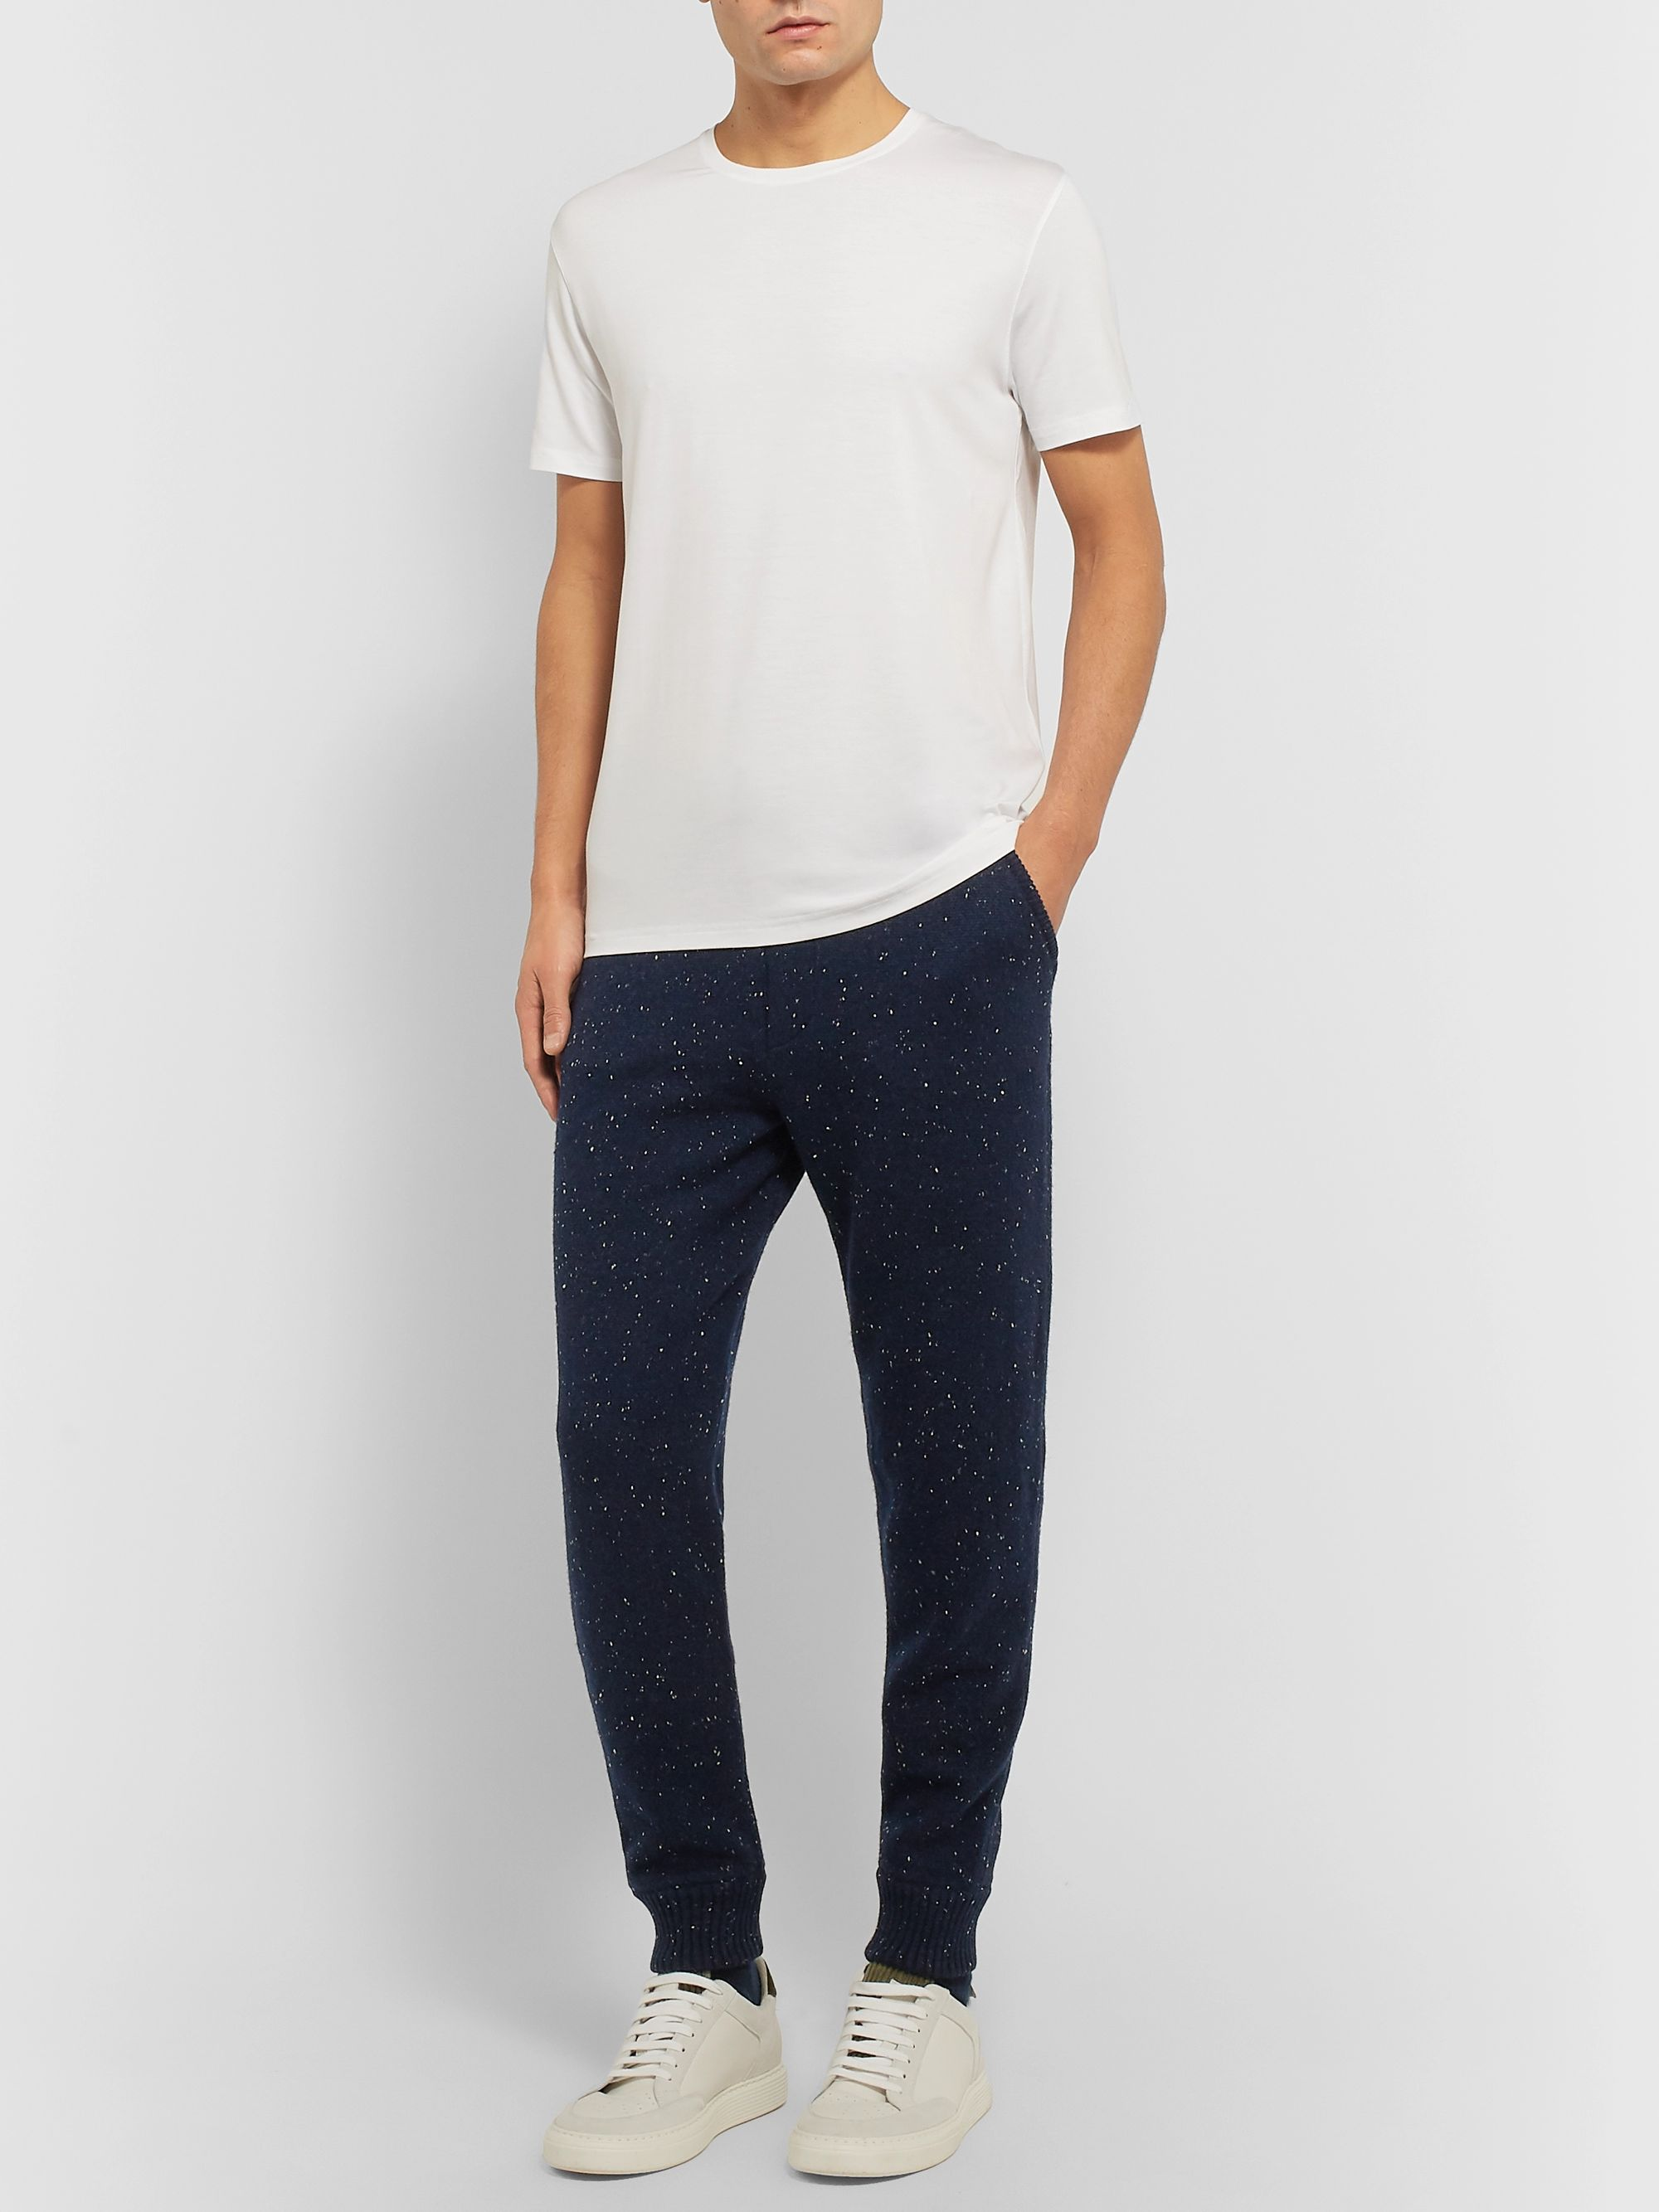 Ermenegildo Zegna Tapered Donegal Wool, Silk and Cashmere-Blend Sweatpants